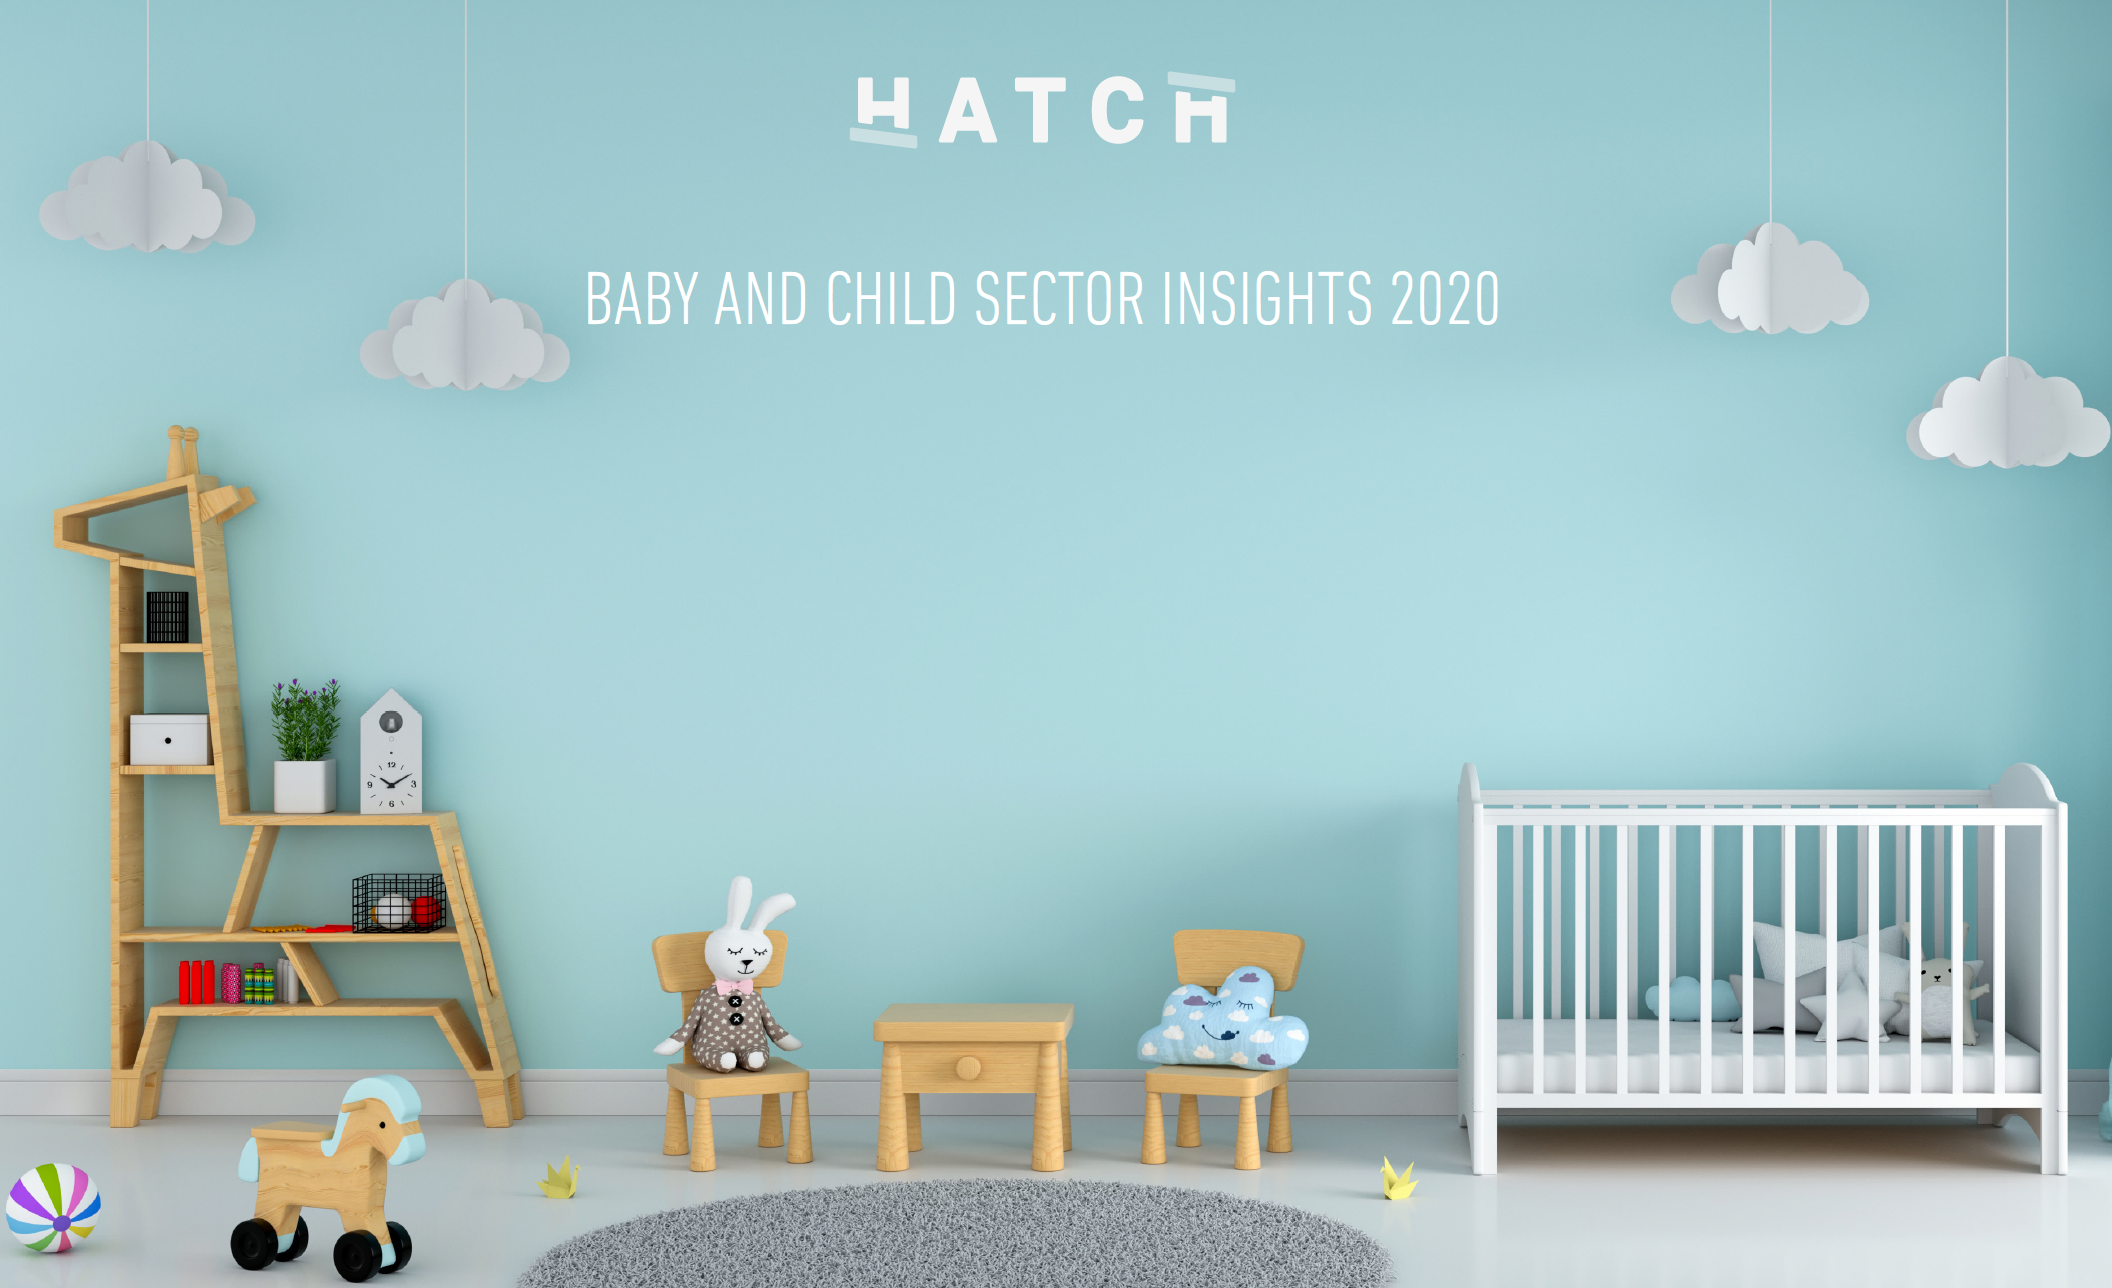 Baby and Child Sector Insights 2020